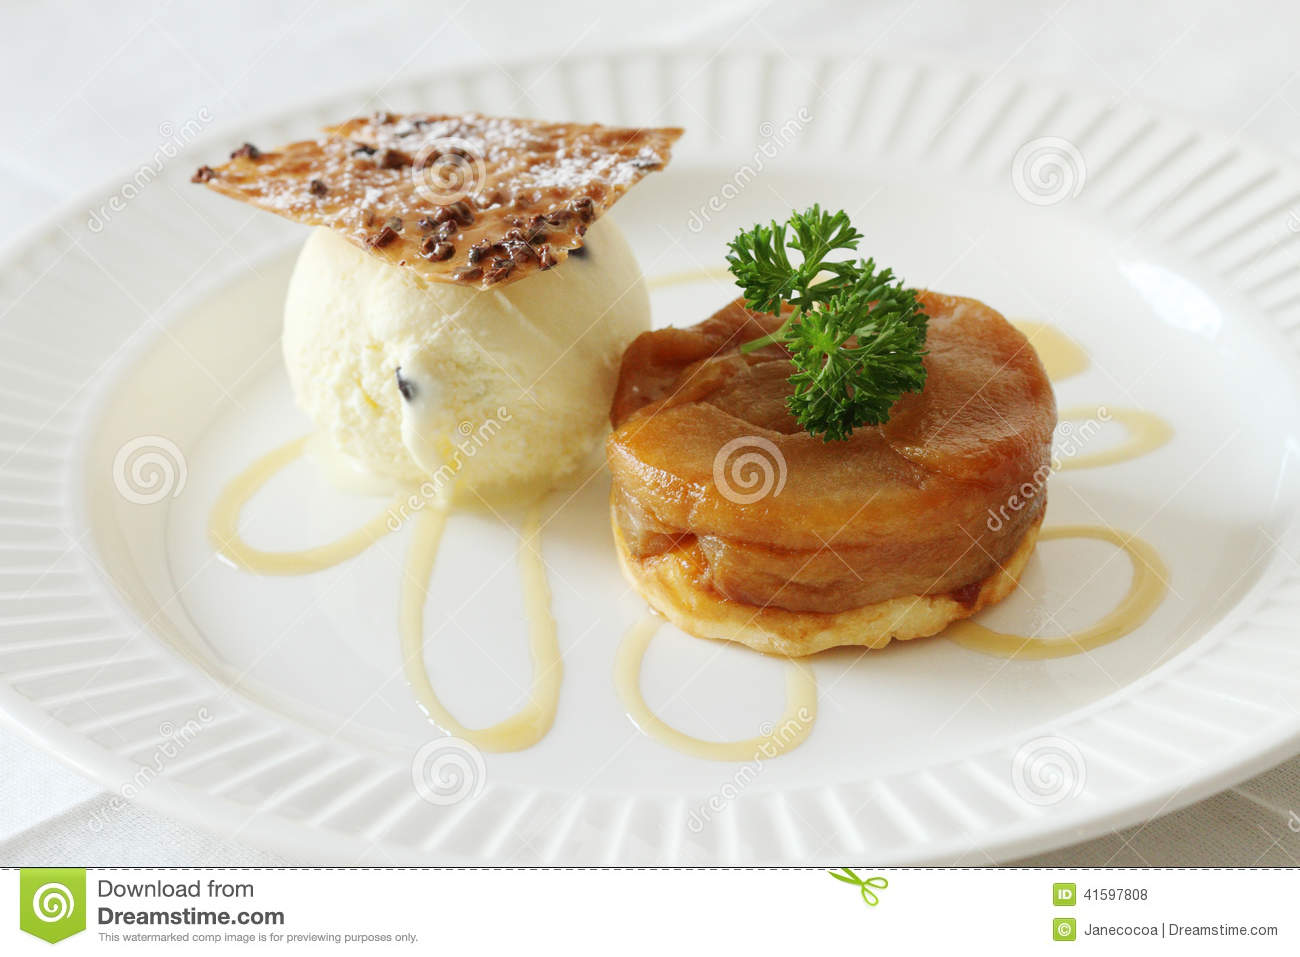 Warm apple tart with vanilla ice cream.